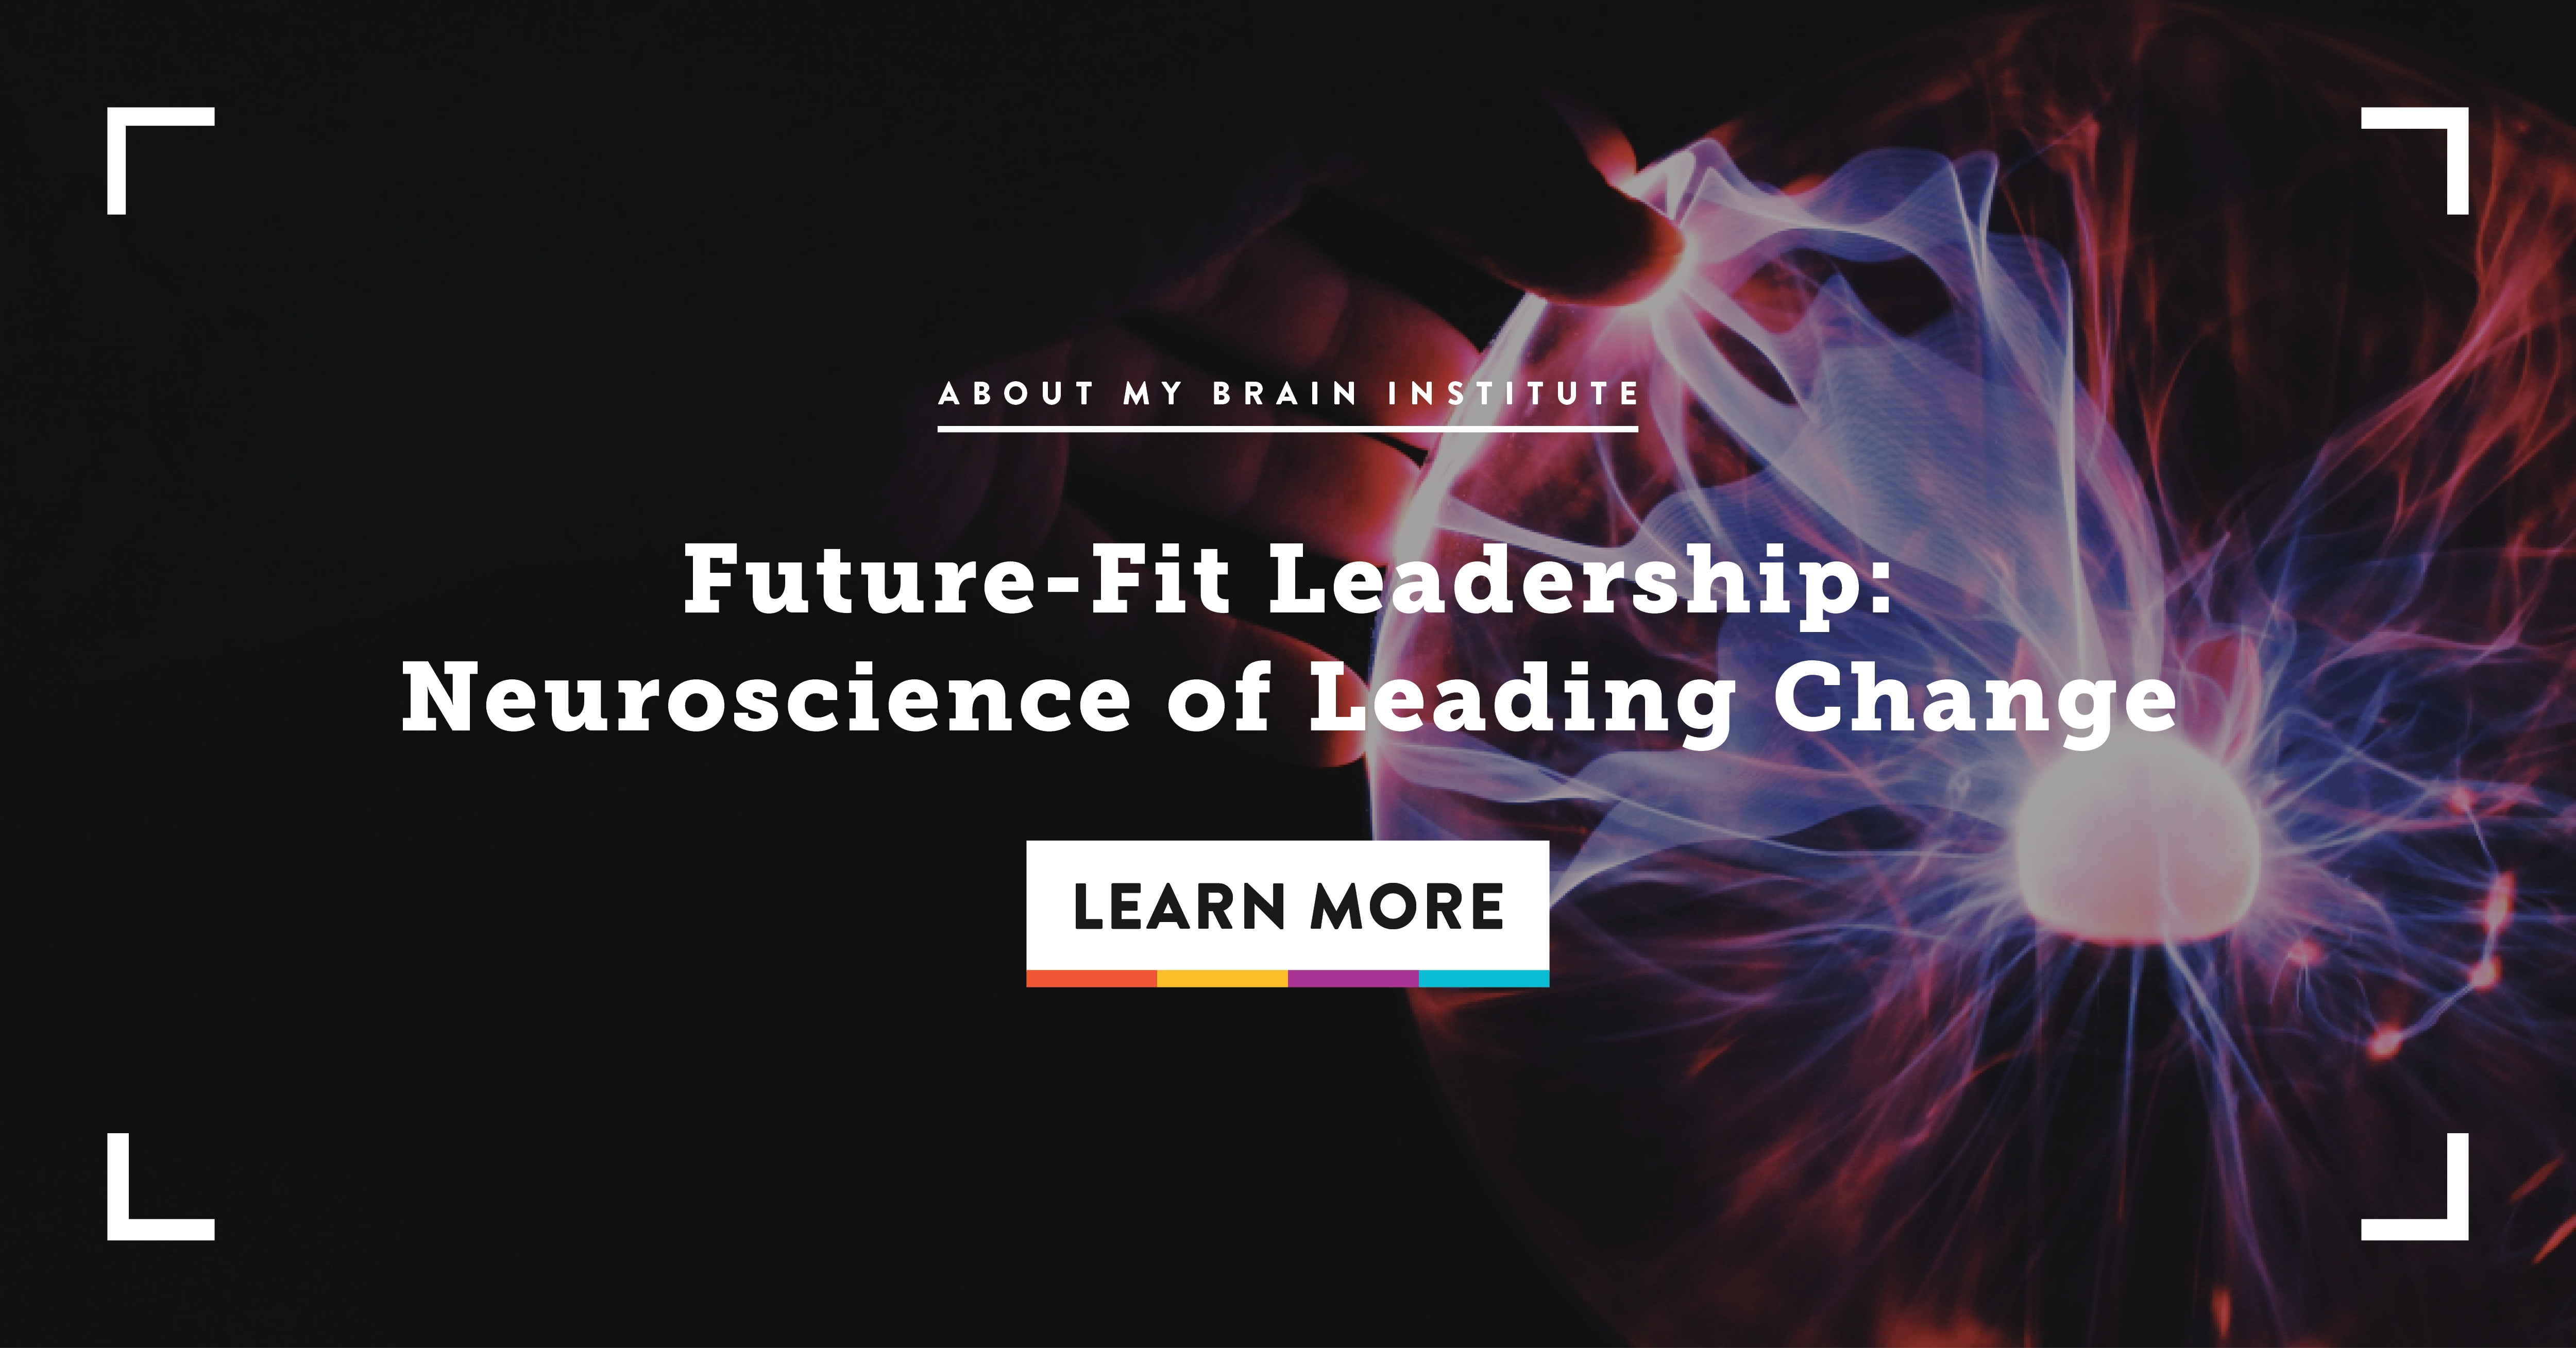 Future - Fit Leadership: Neuroscience of Leading Change